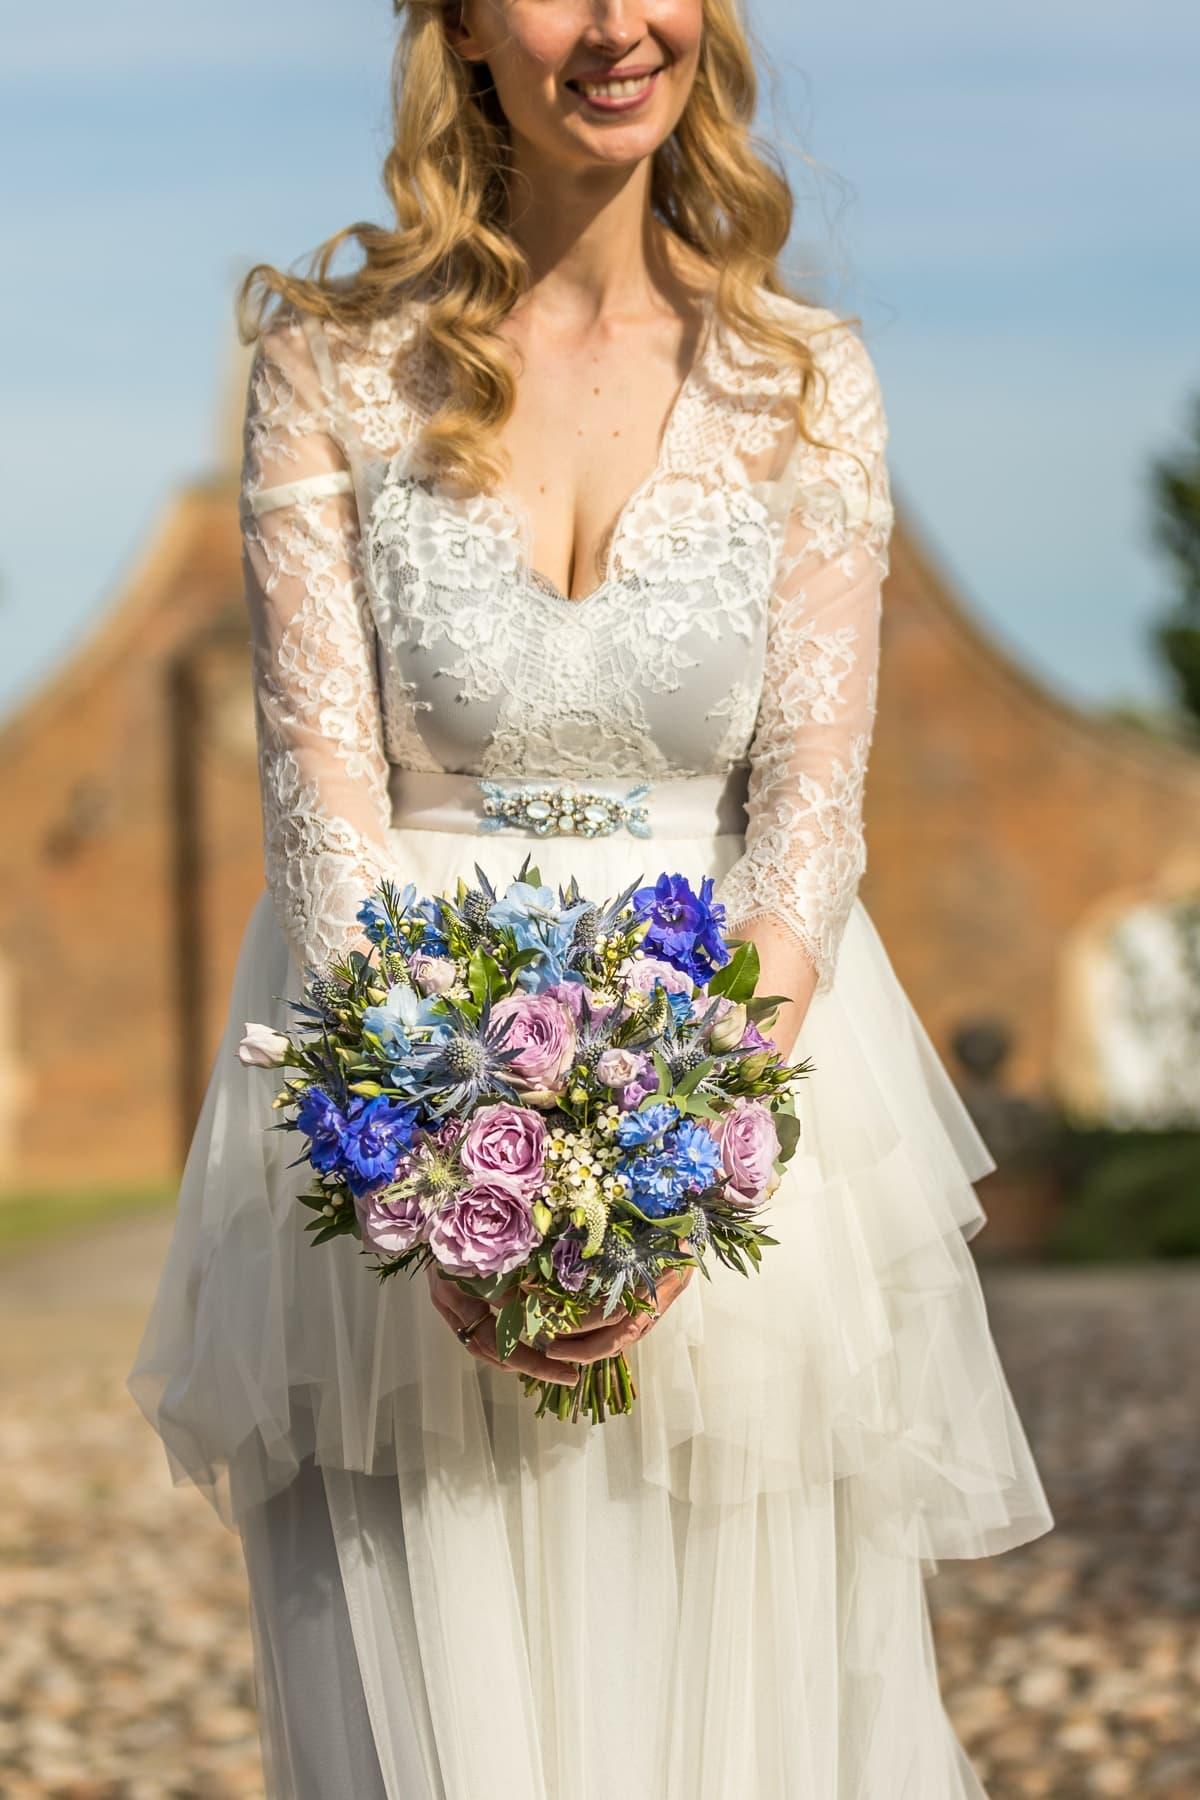 Bride and bouquet at Madingley Hall